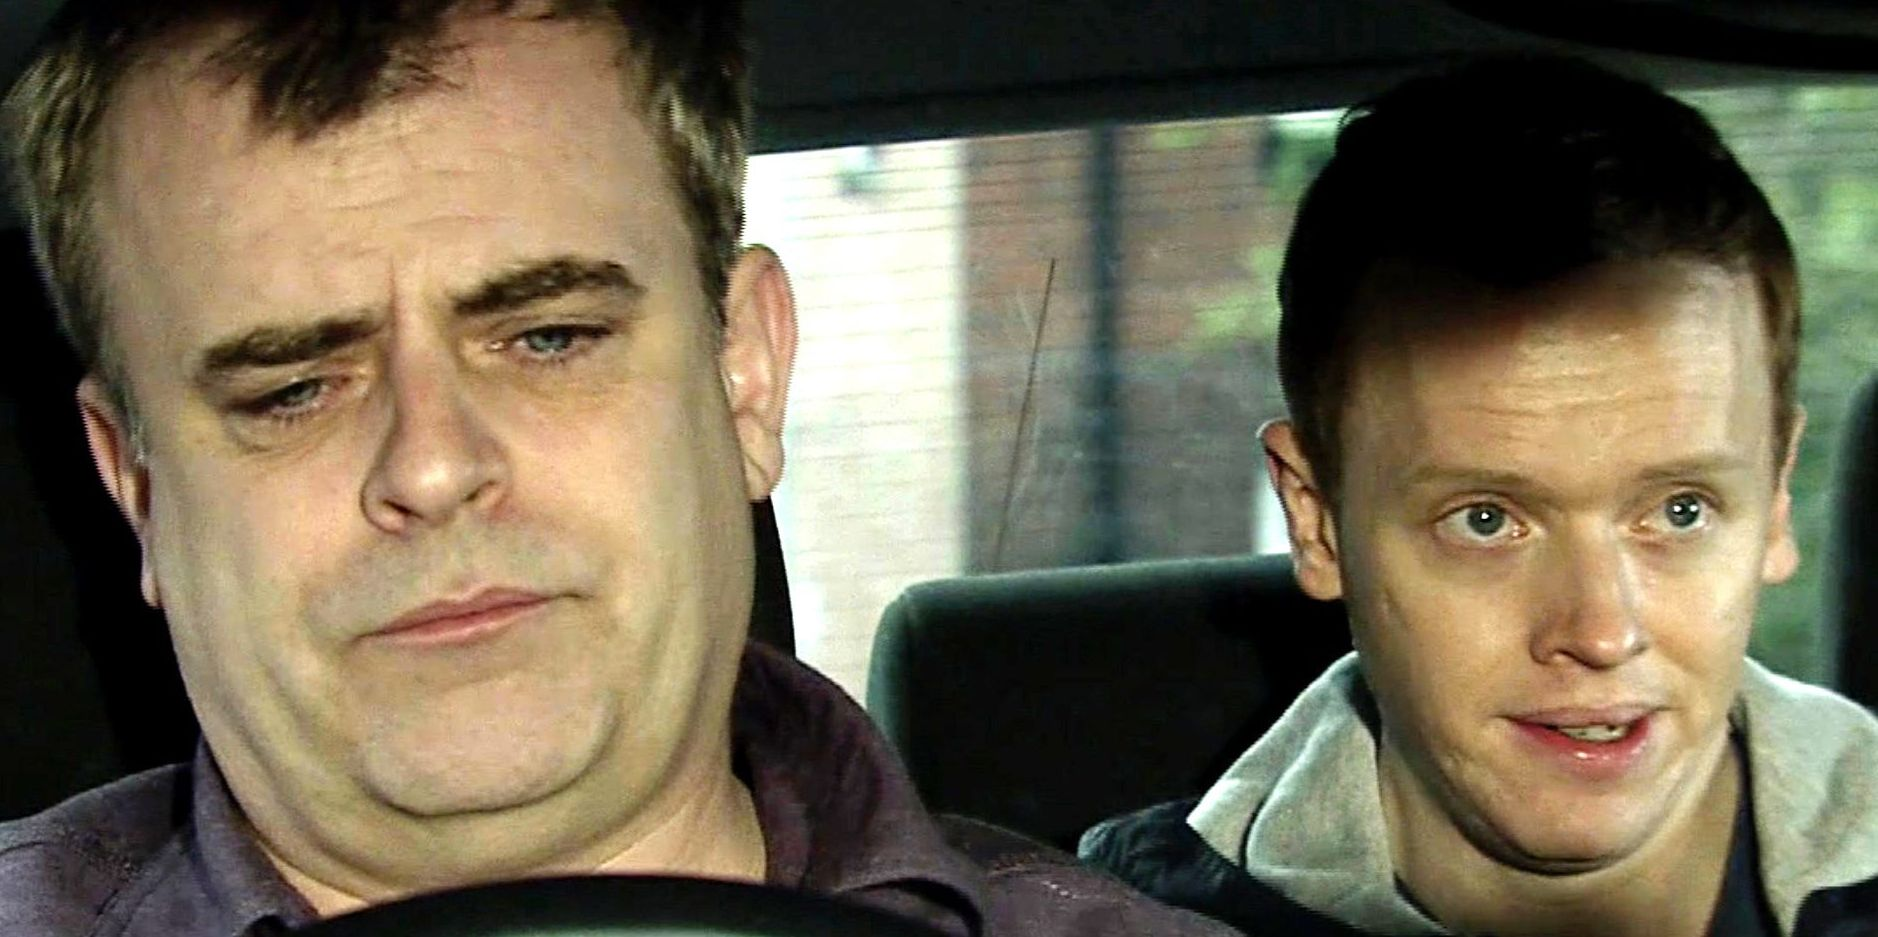 Steve McDonald with a dodgy cab customer in Coronation Street